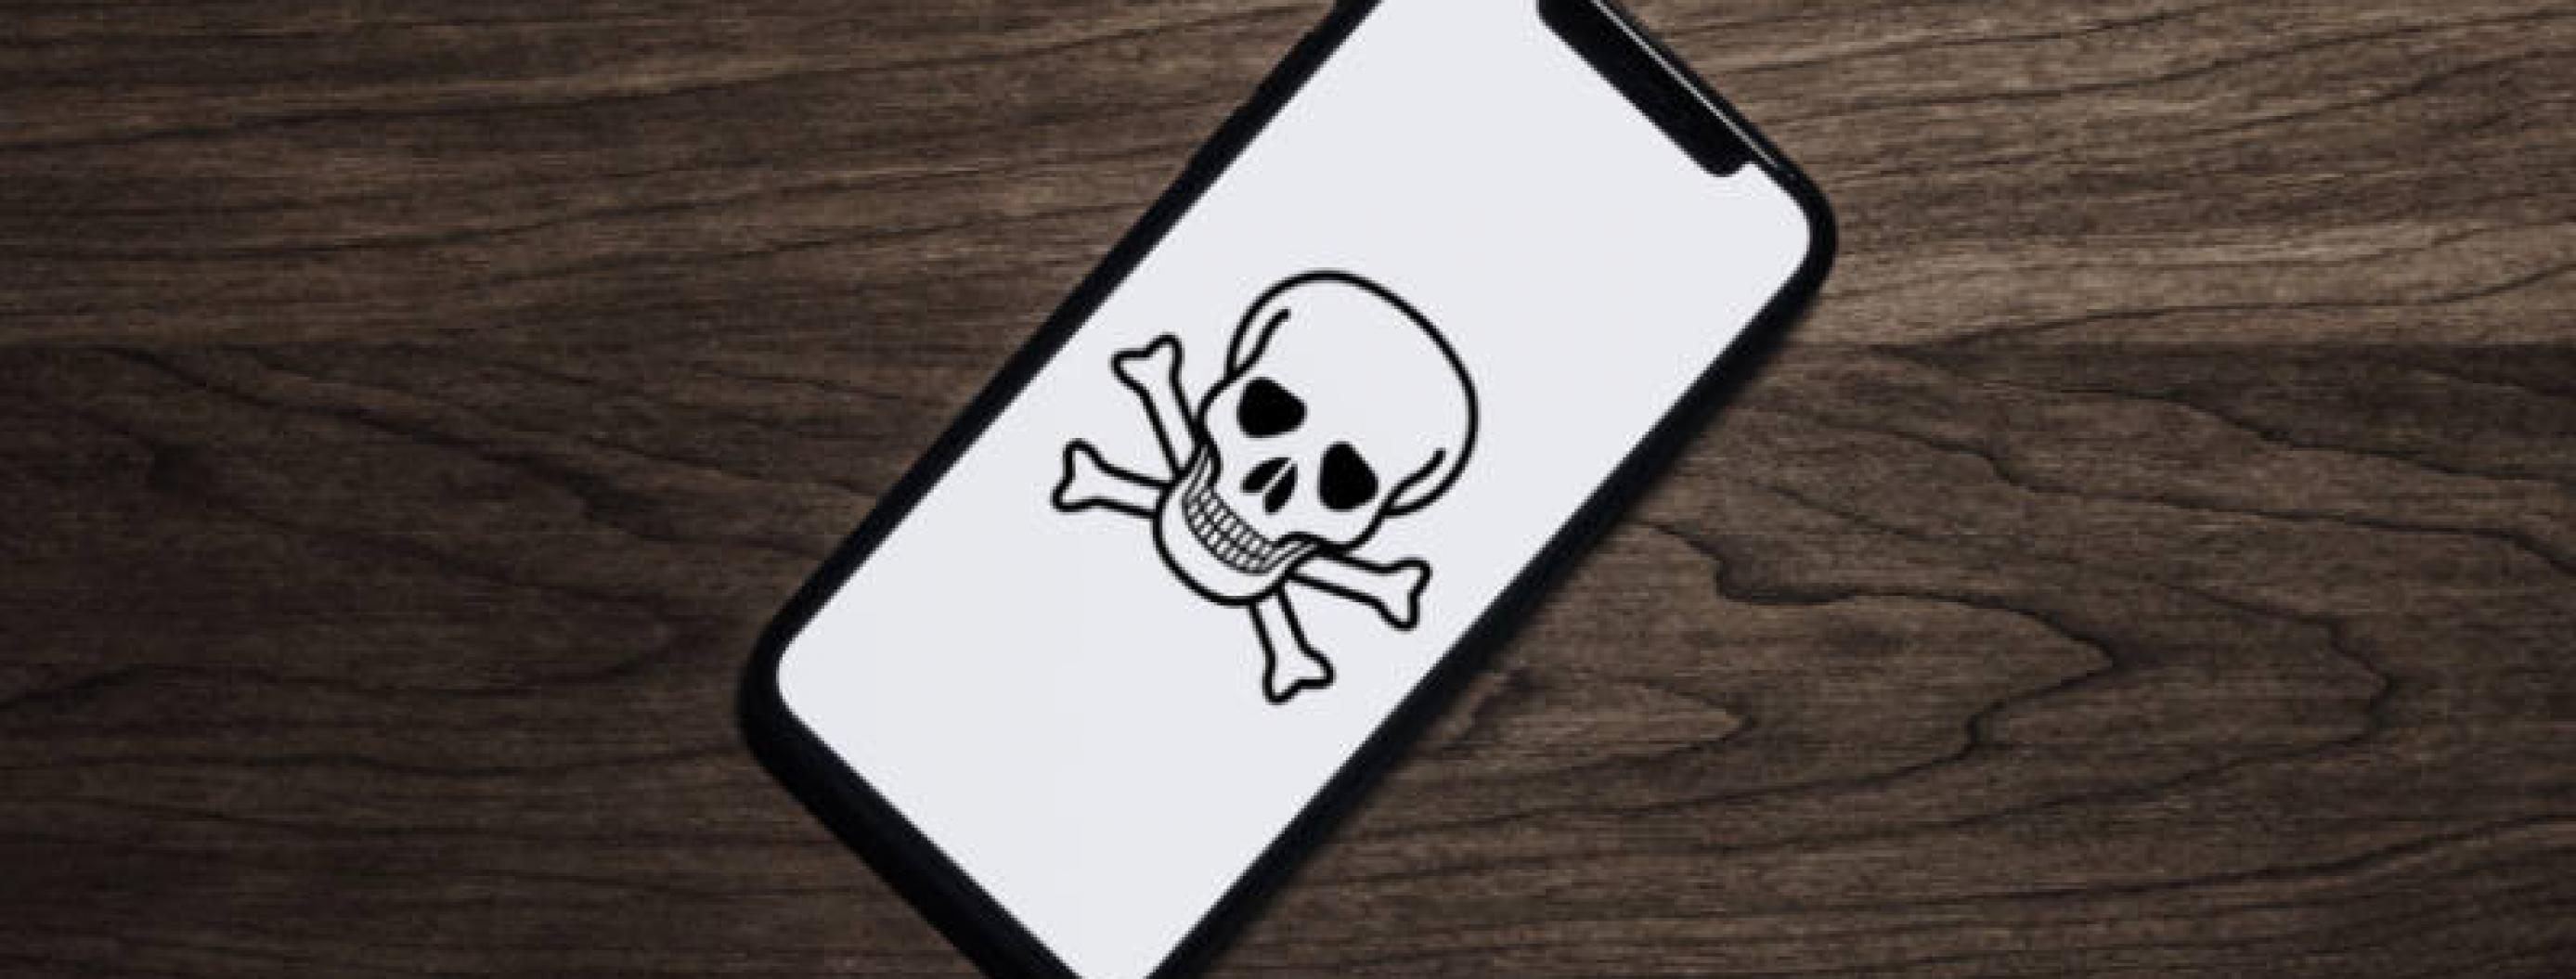 4 Signs Your Phone Might Have Been Hacked